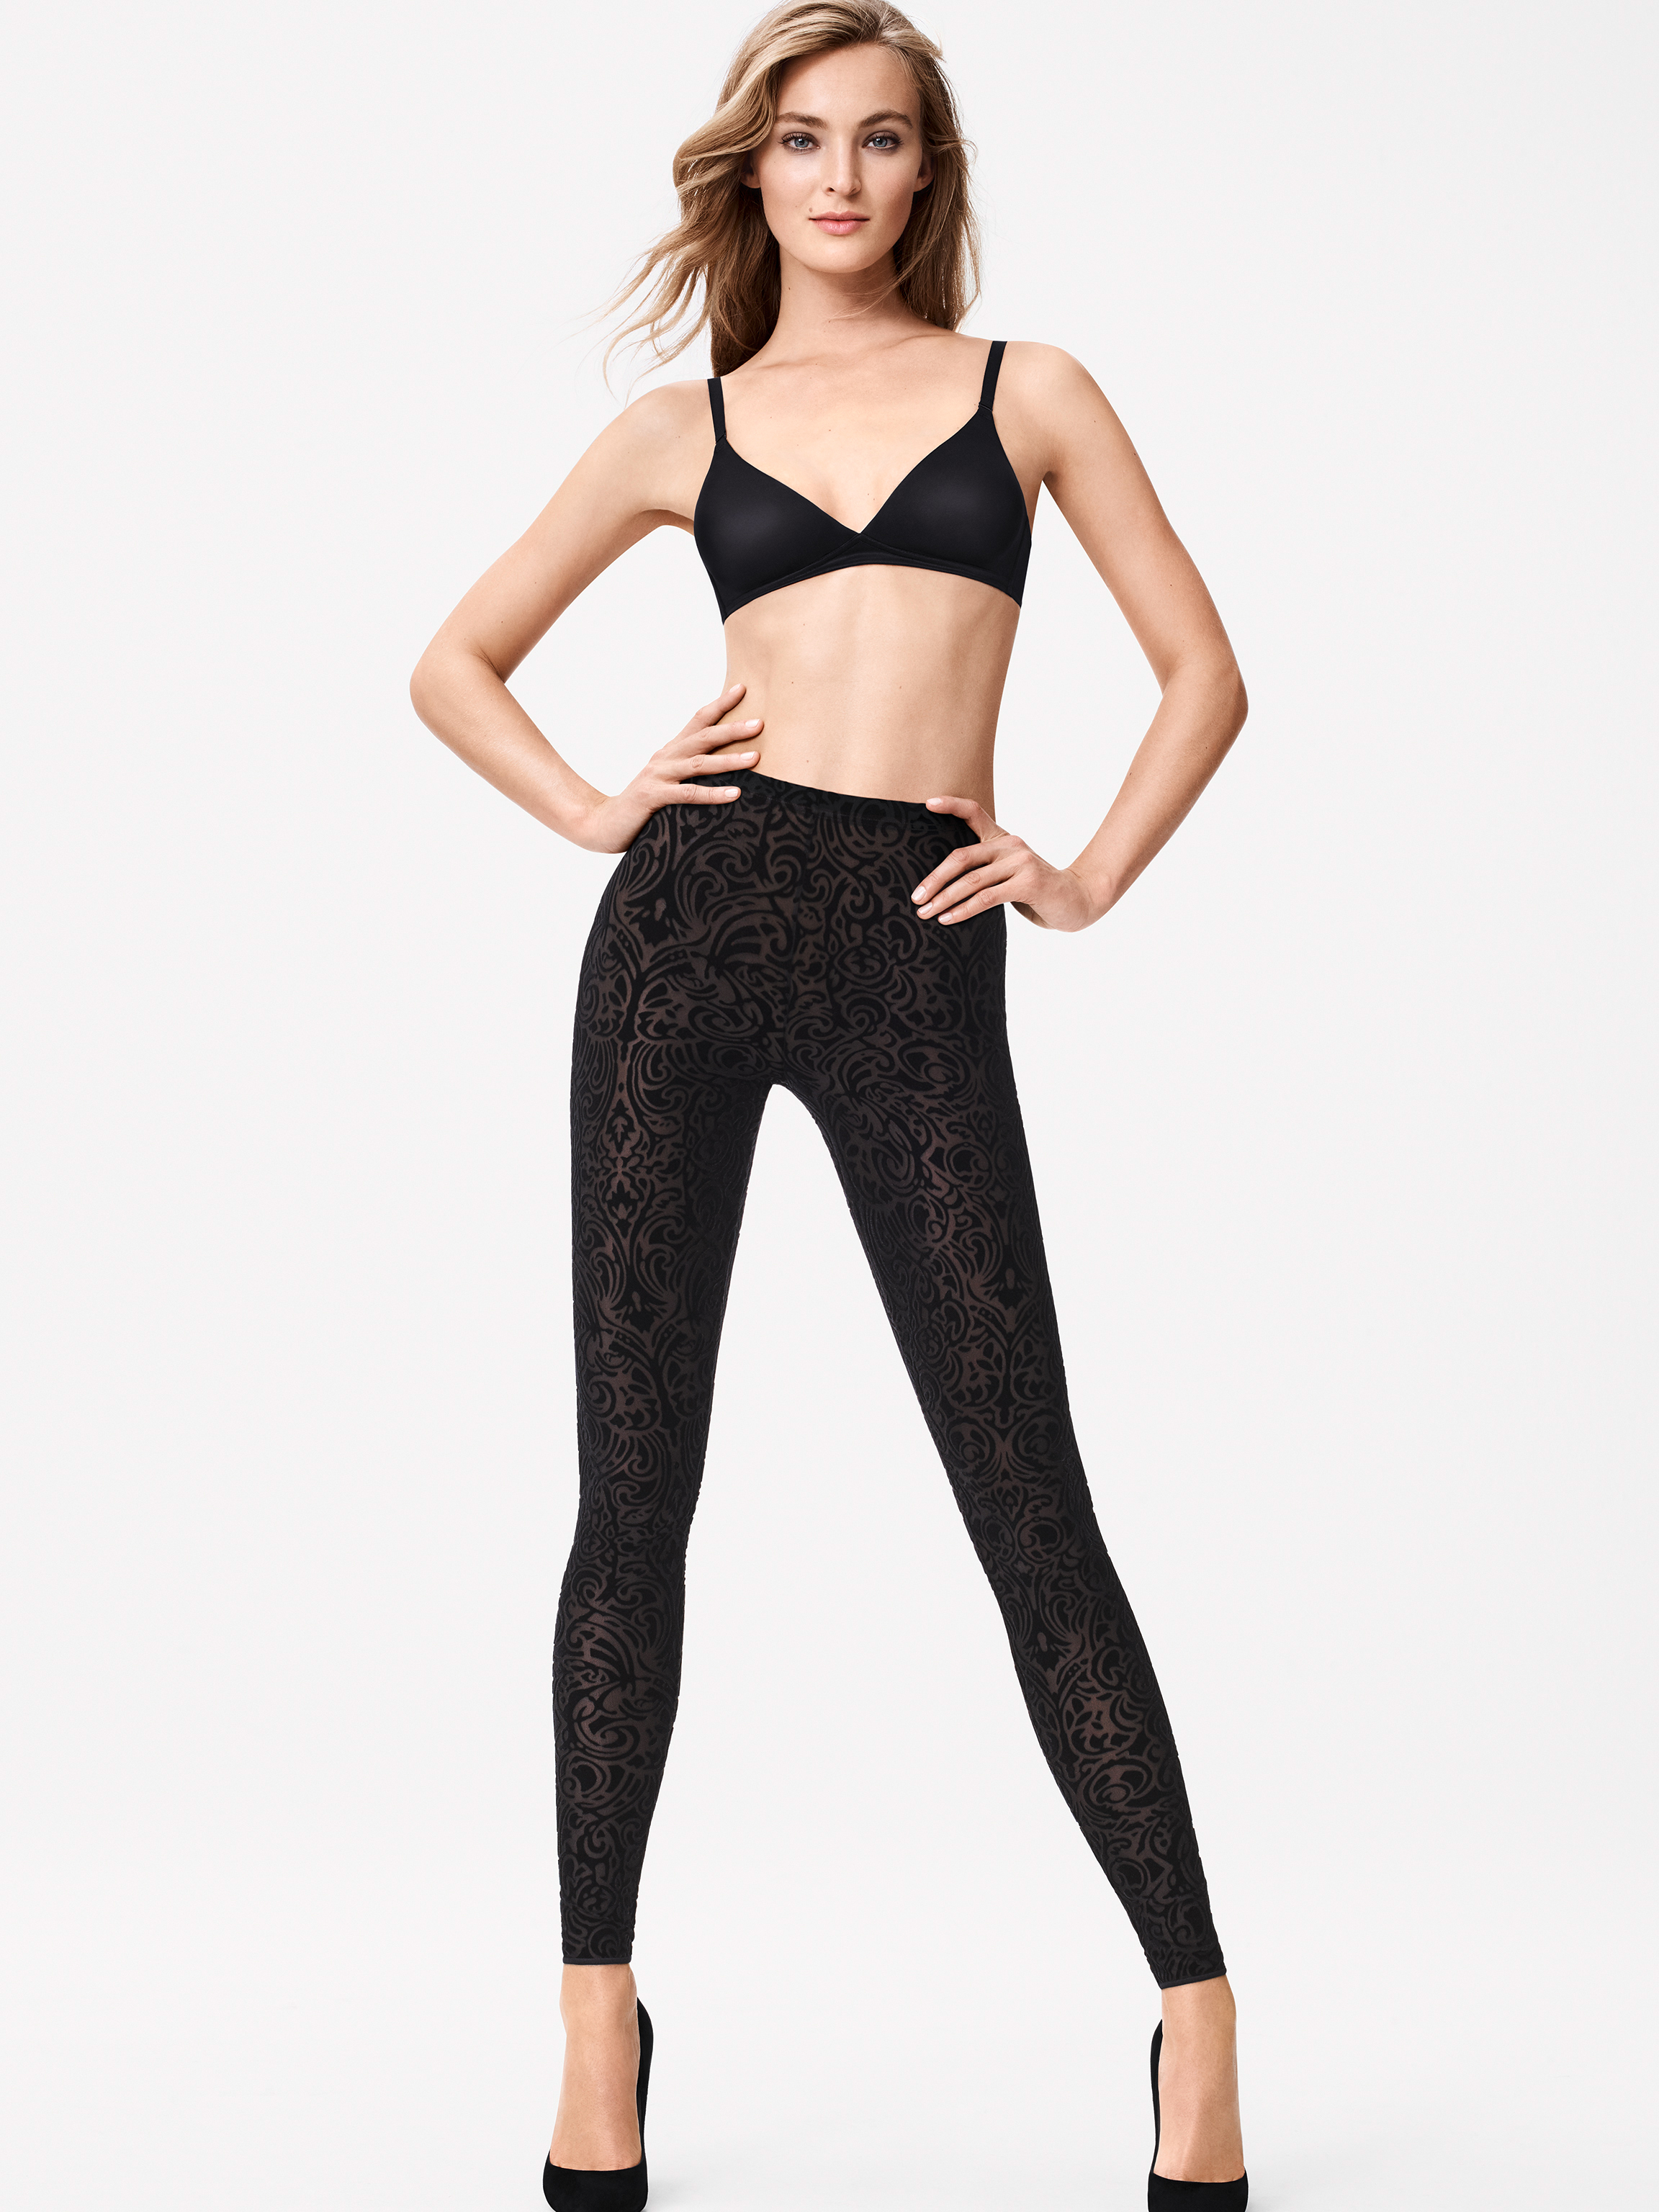 Unbeatable softness: Leggings with wonderfully soft velvet decoration. The figure-hugging cut and comfortably soft waistband ensure a perfect fit.